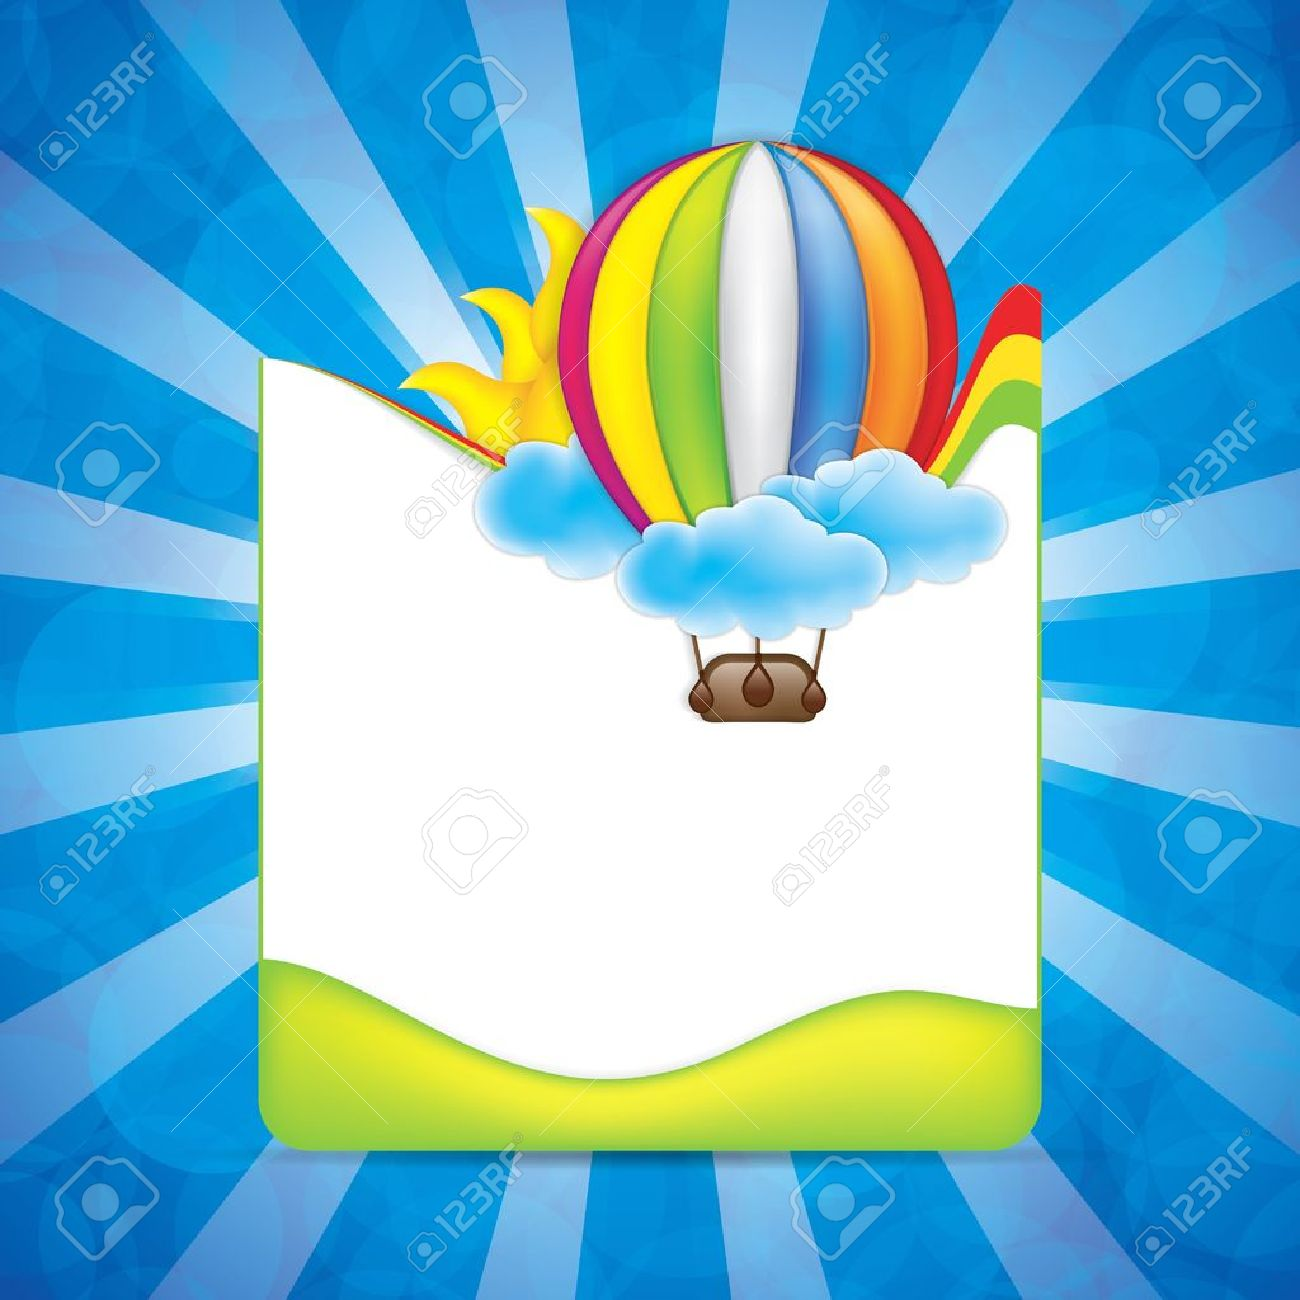 spring frame with hot air balloon and rainbow stock vector 19500583